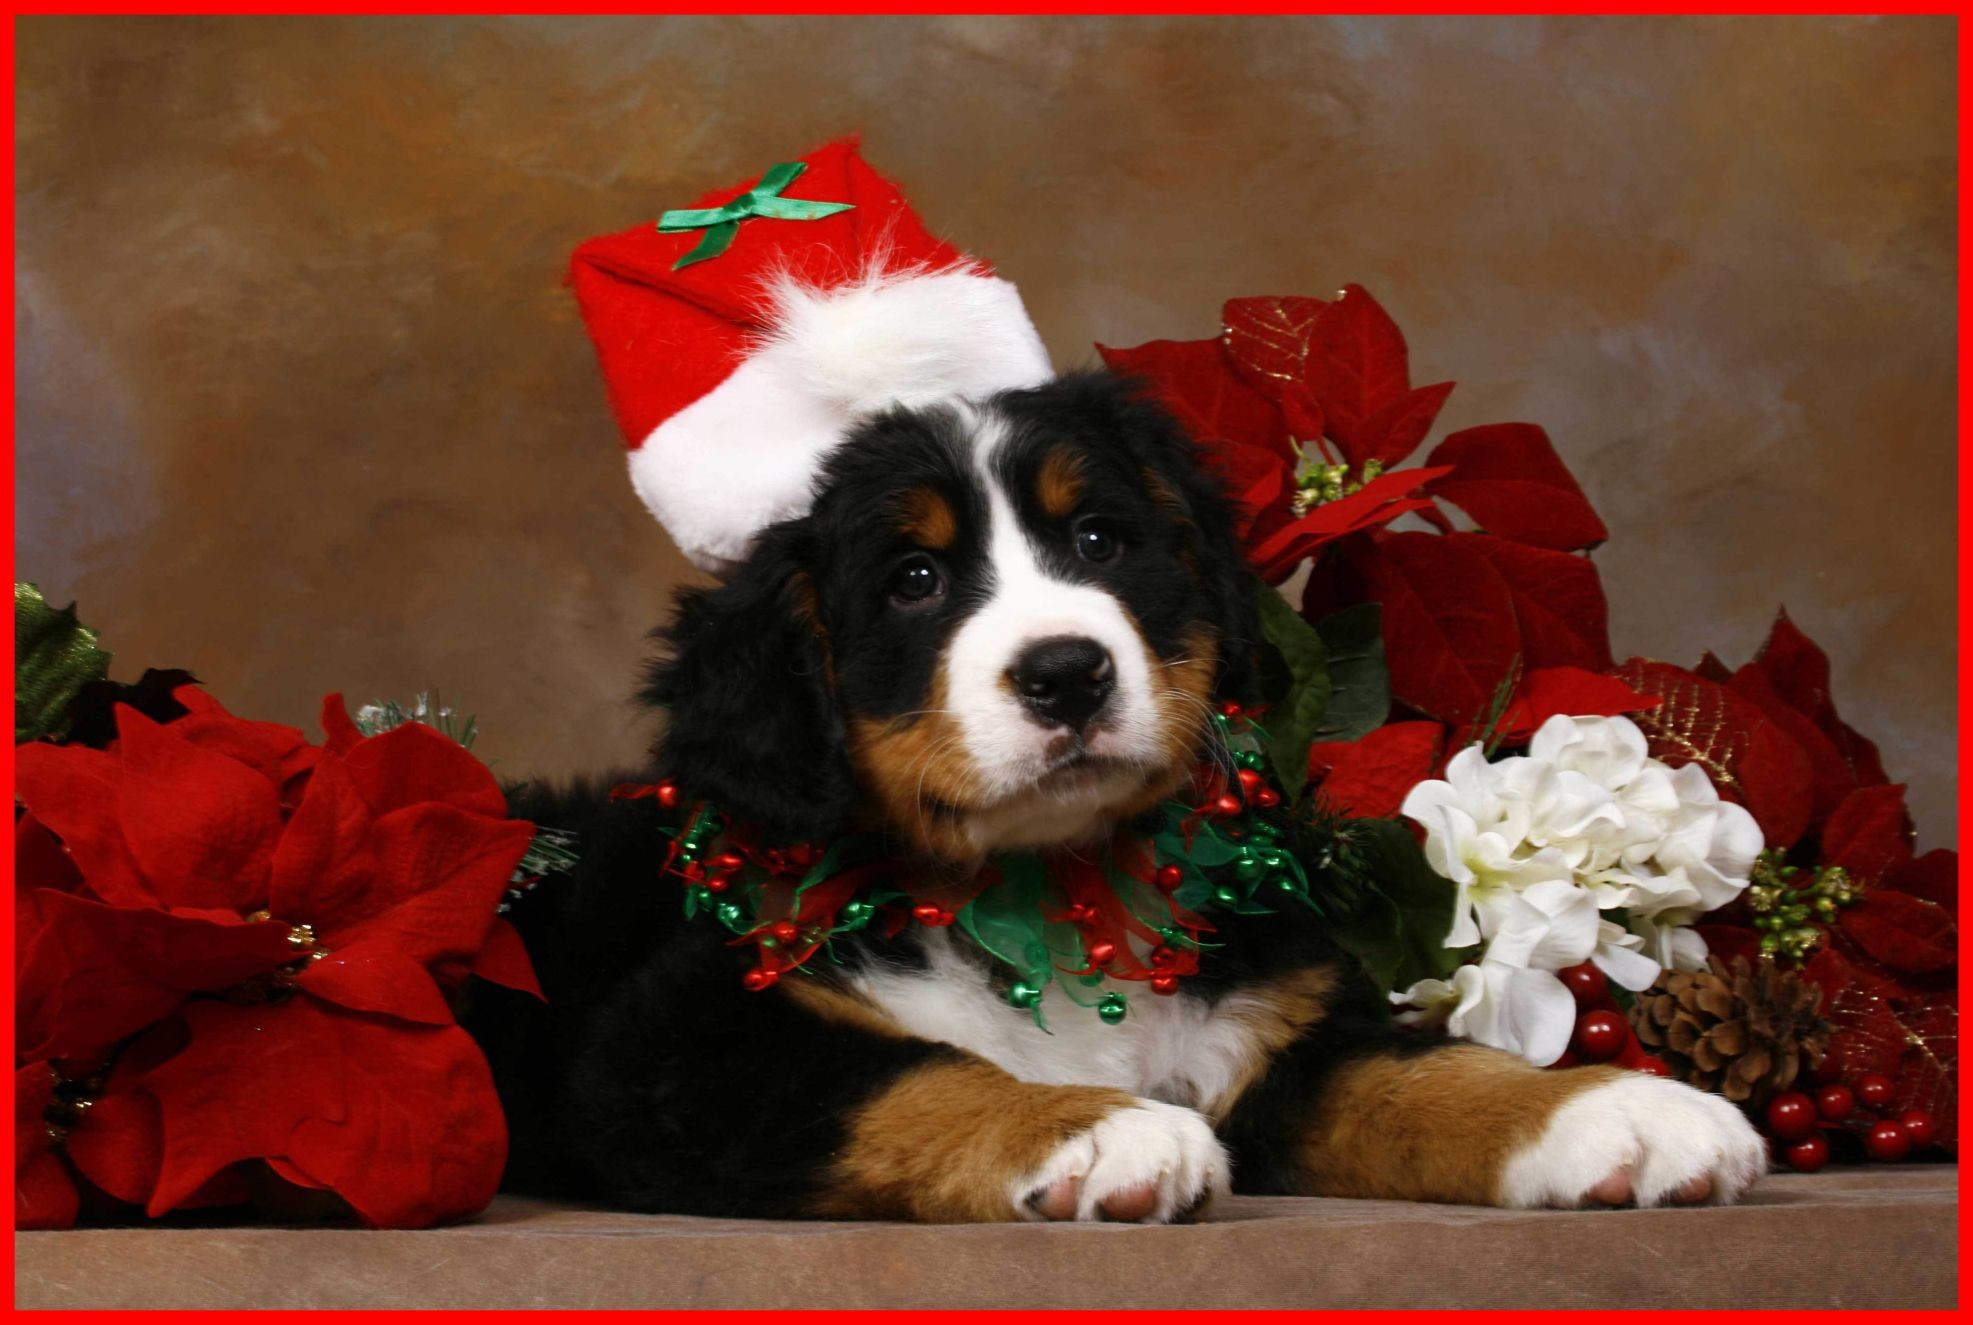 Res: 1973x1325, Fascinating Christmas Puppy Wallpaper Of Cute Hd Desktop Trends And Ideas  Cute Puppy Hd Desktop Wallpaper